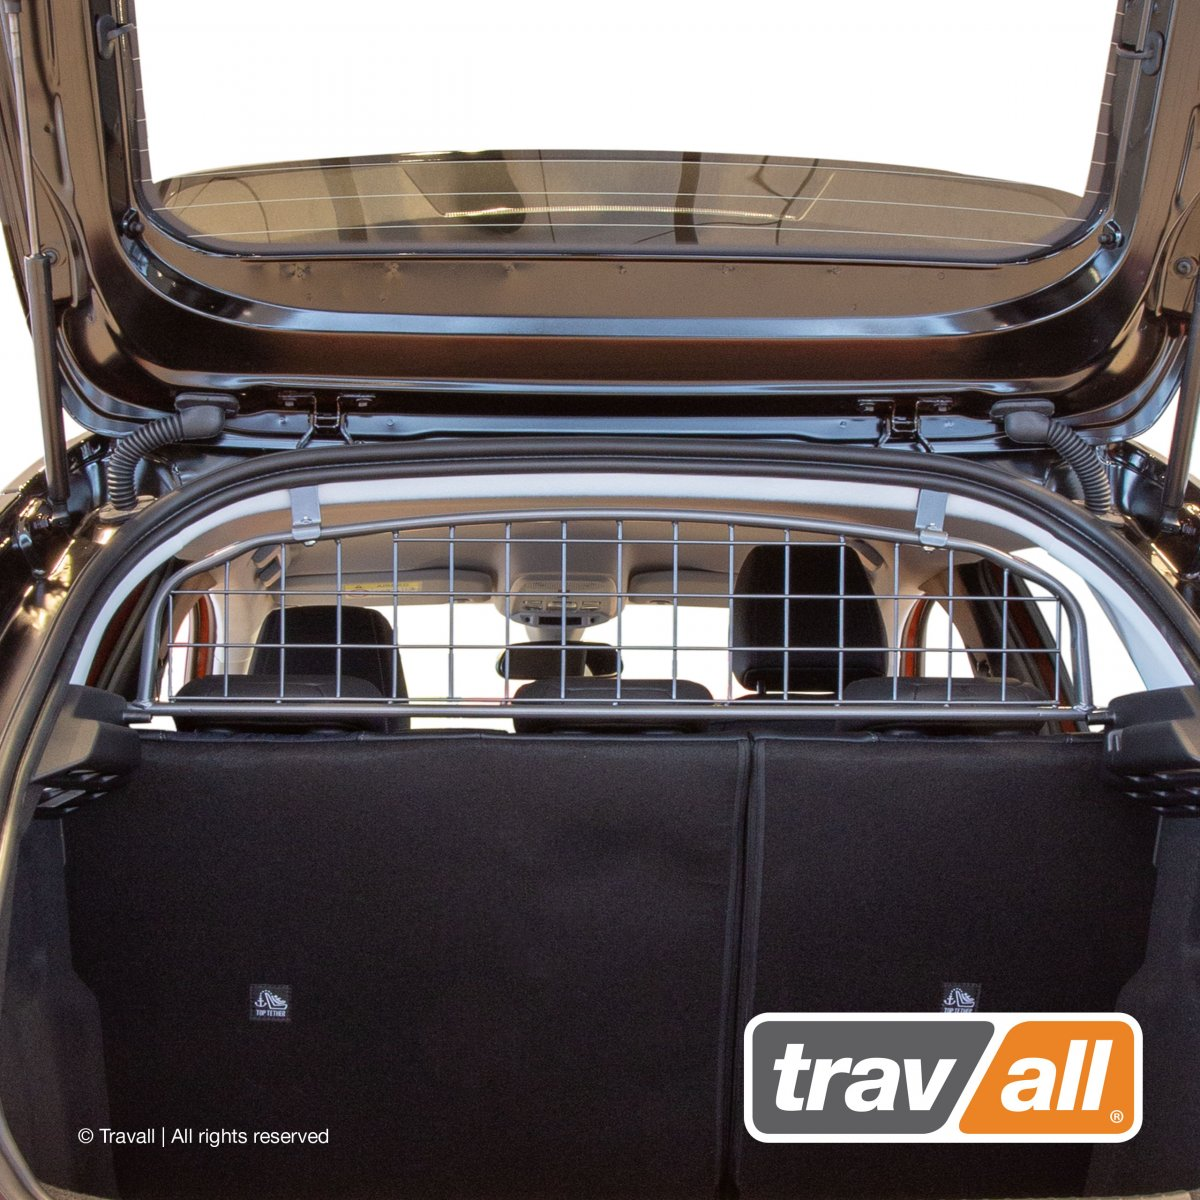 Travall®GUARD pour Opel / Vauxhall Corsa (2019 >)